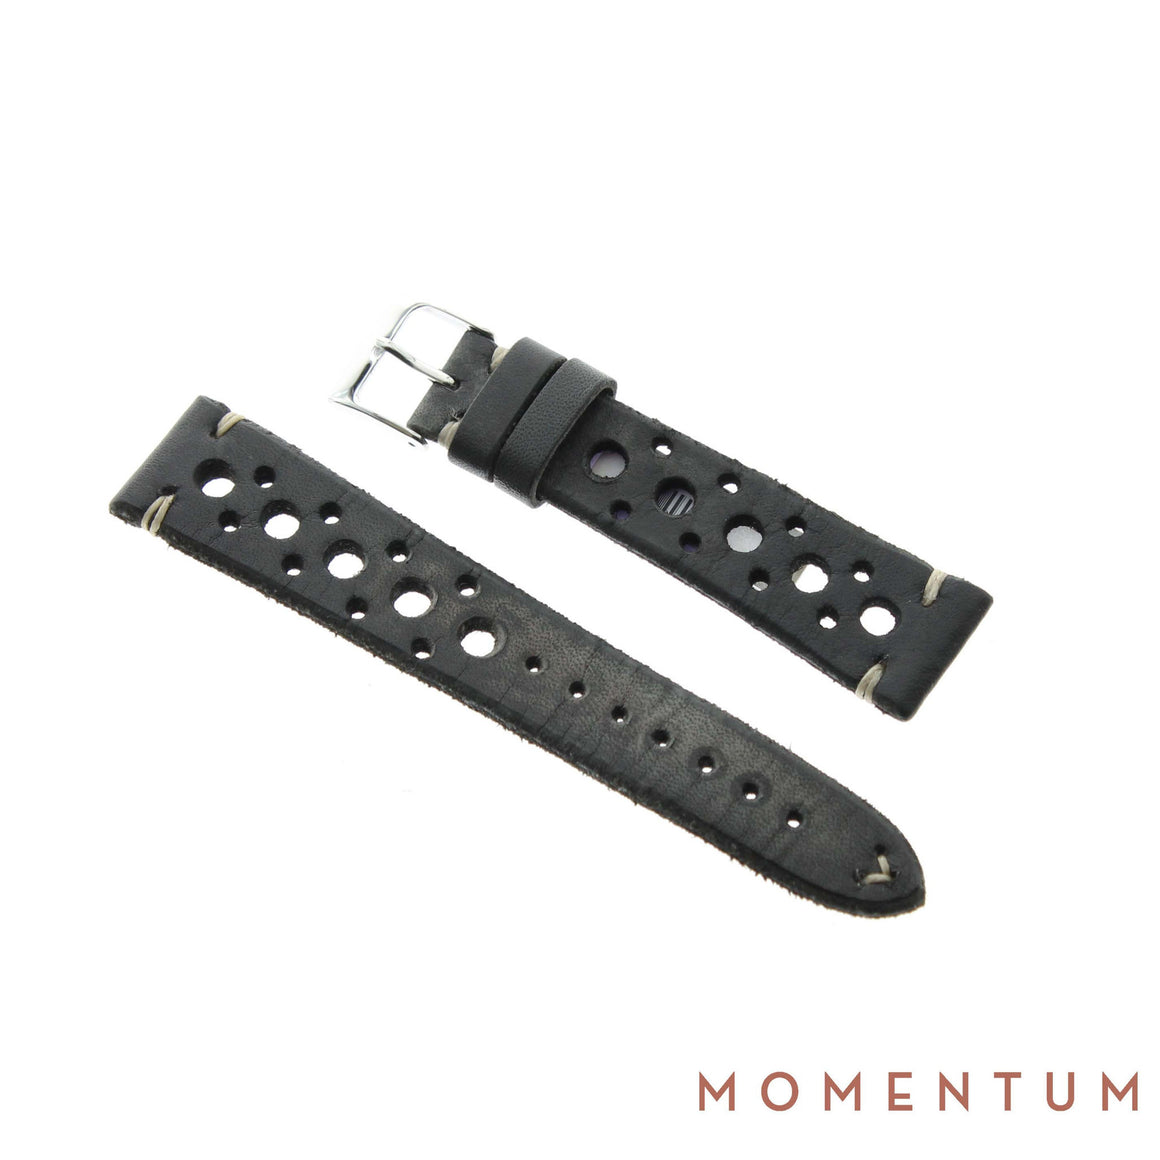 Vintage Strap - Gray Berluti style with holes - Calf Leather - Momentum Dubai